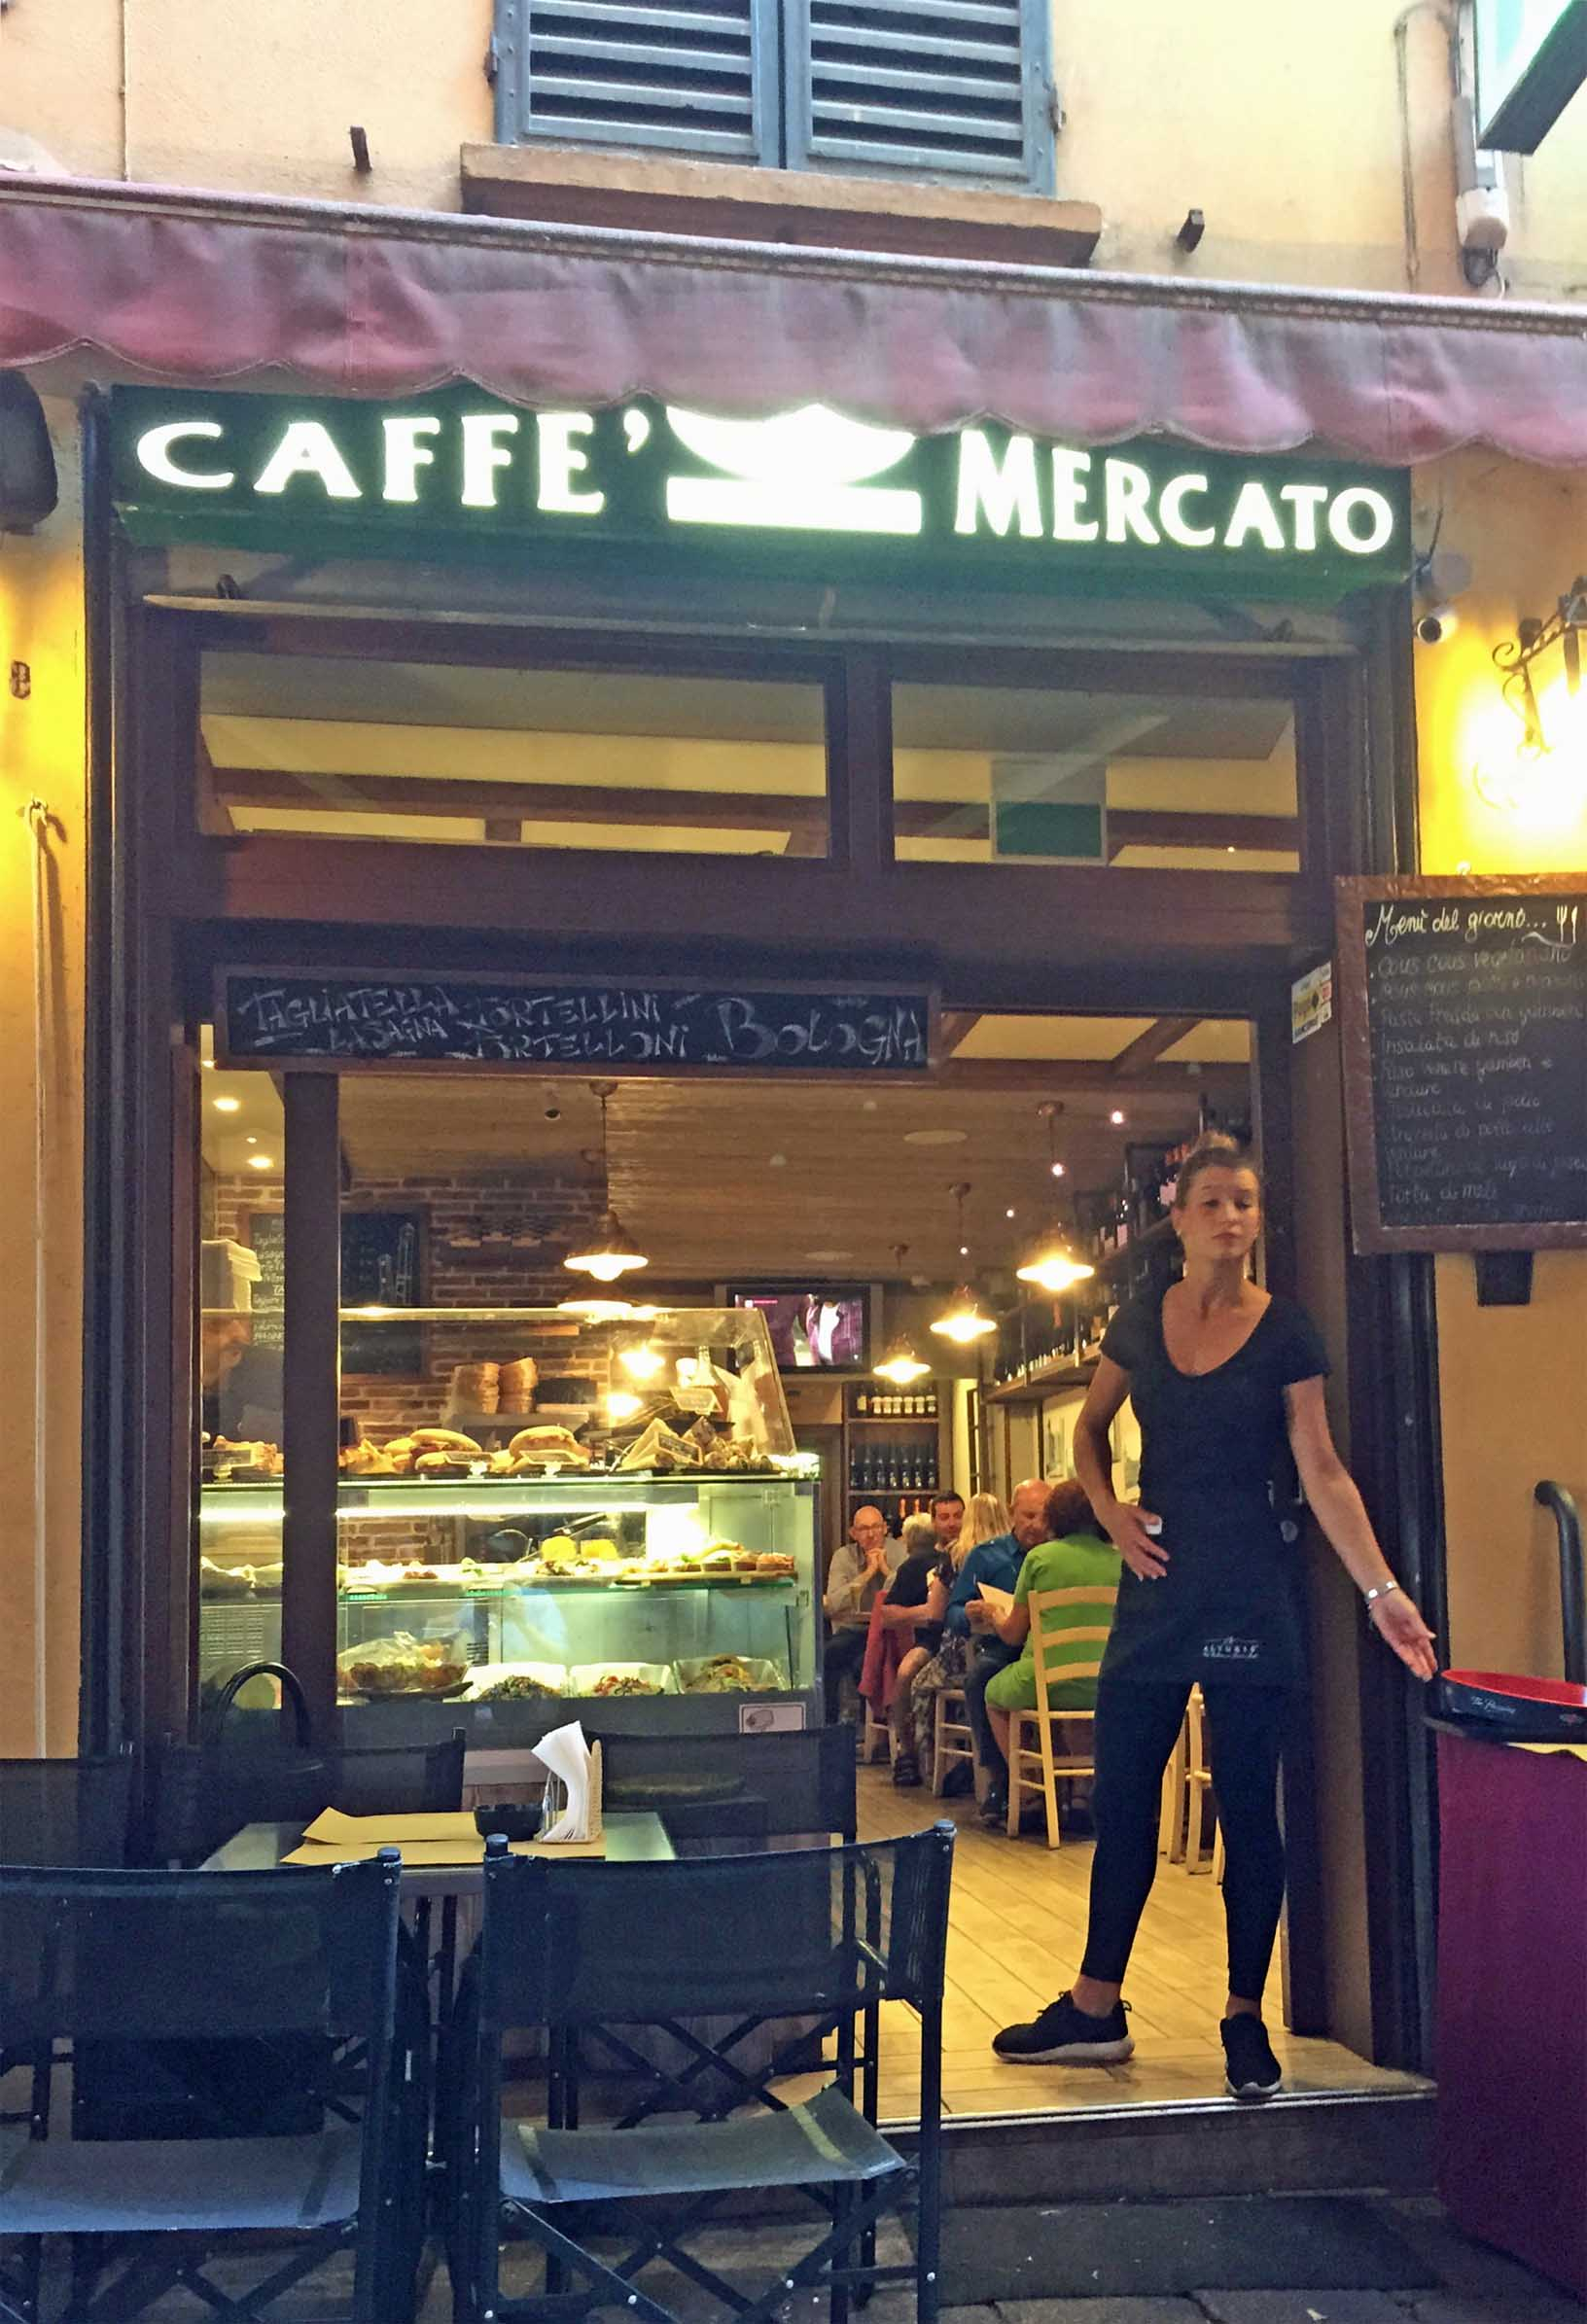 Small cafe with waitress in the doorway